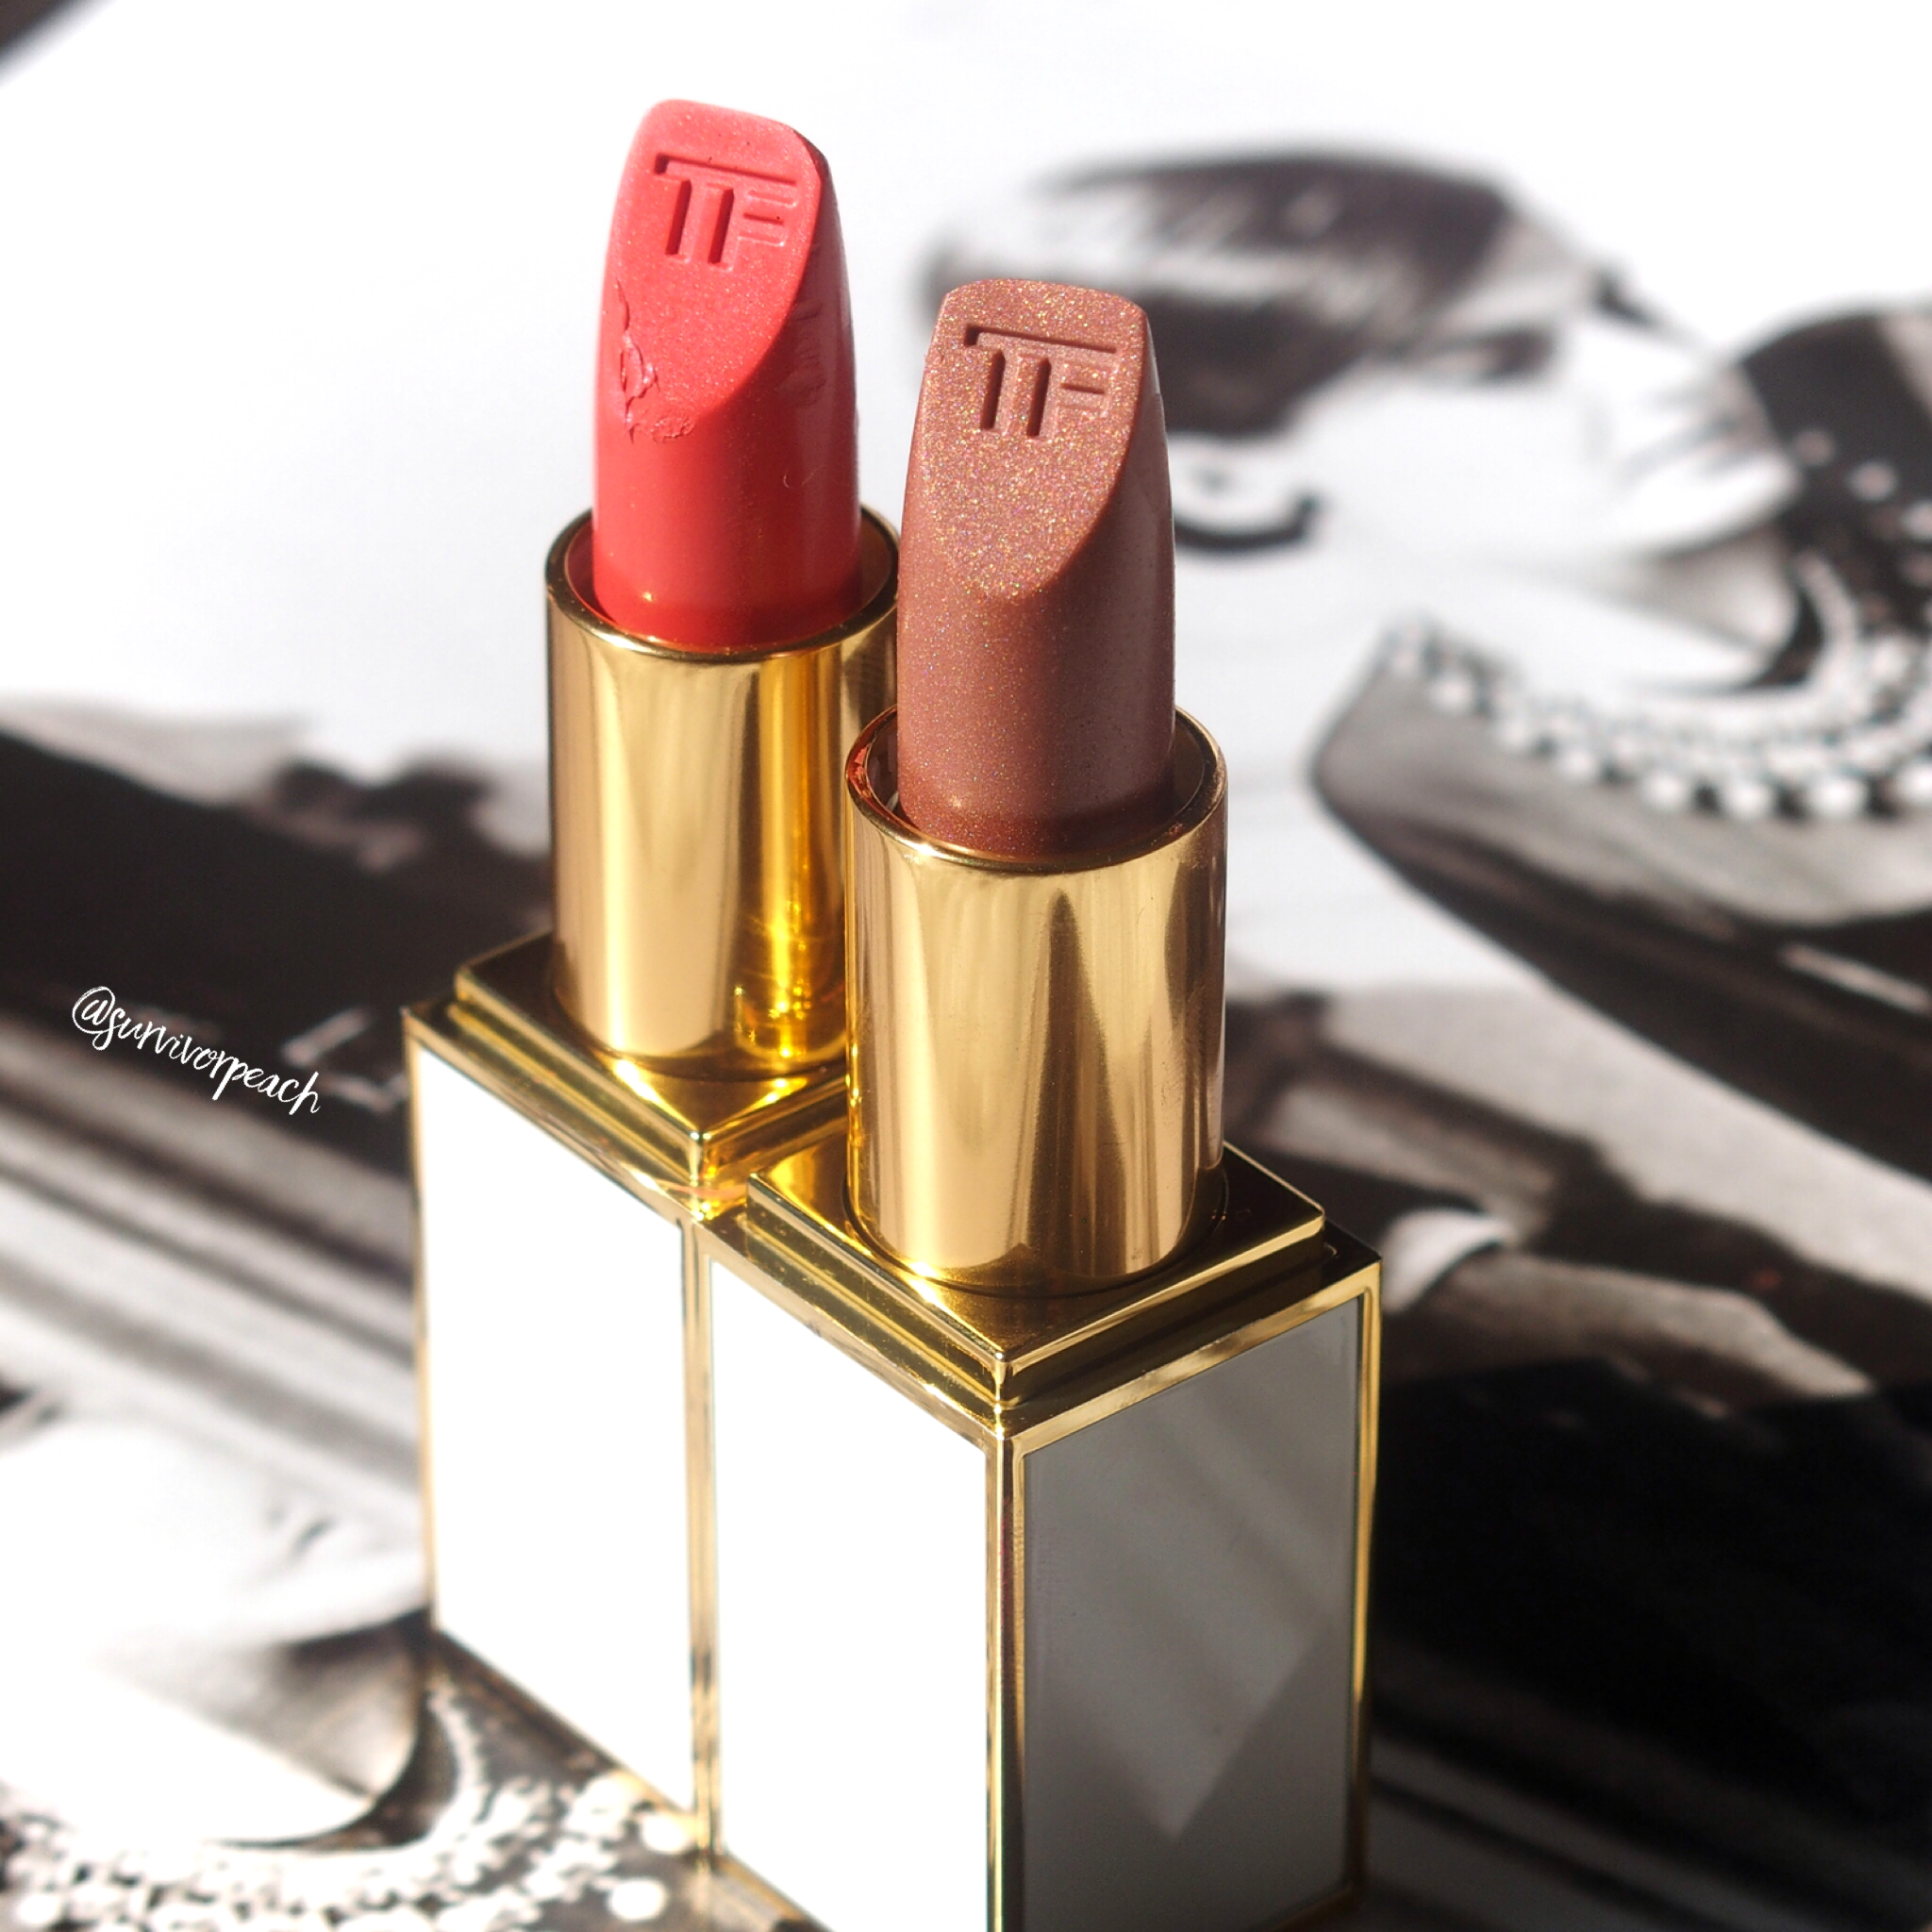 Tom Ford Lip Color Sheer in Nudiste and Solar Affair.